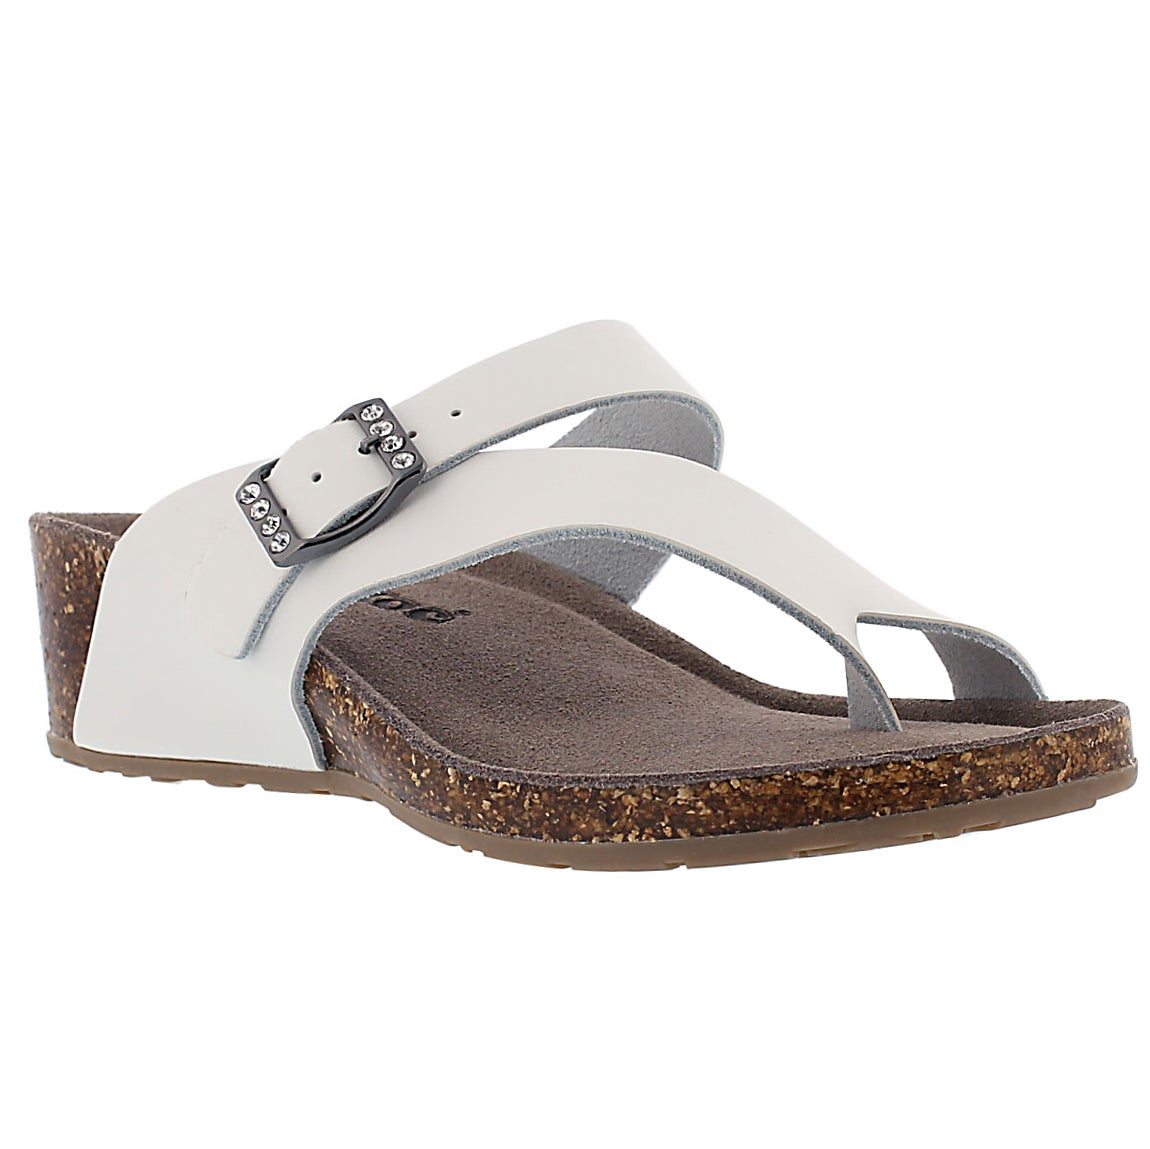 Women's AMBER 3 white memory foam sandals